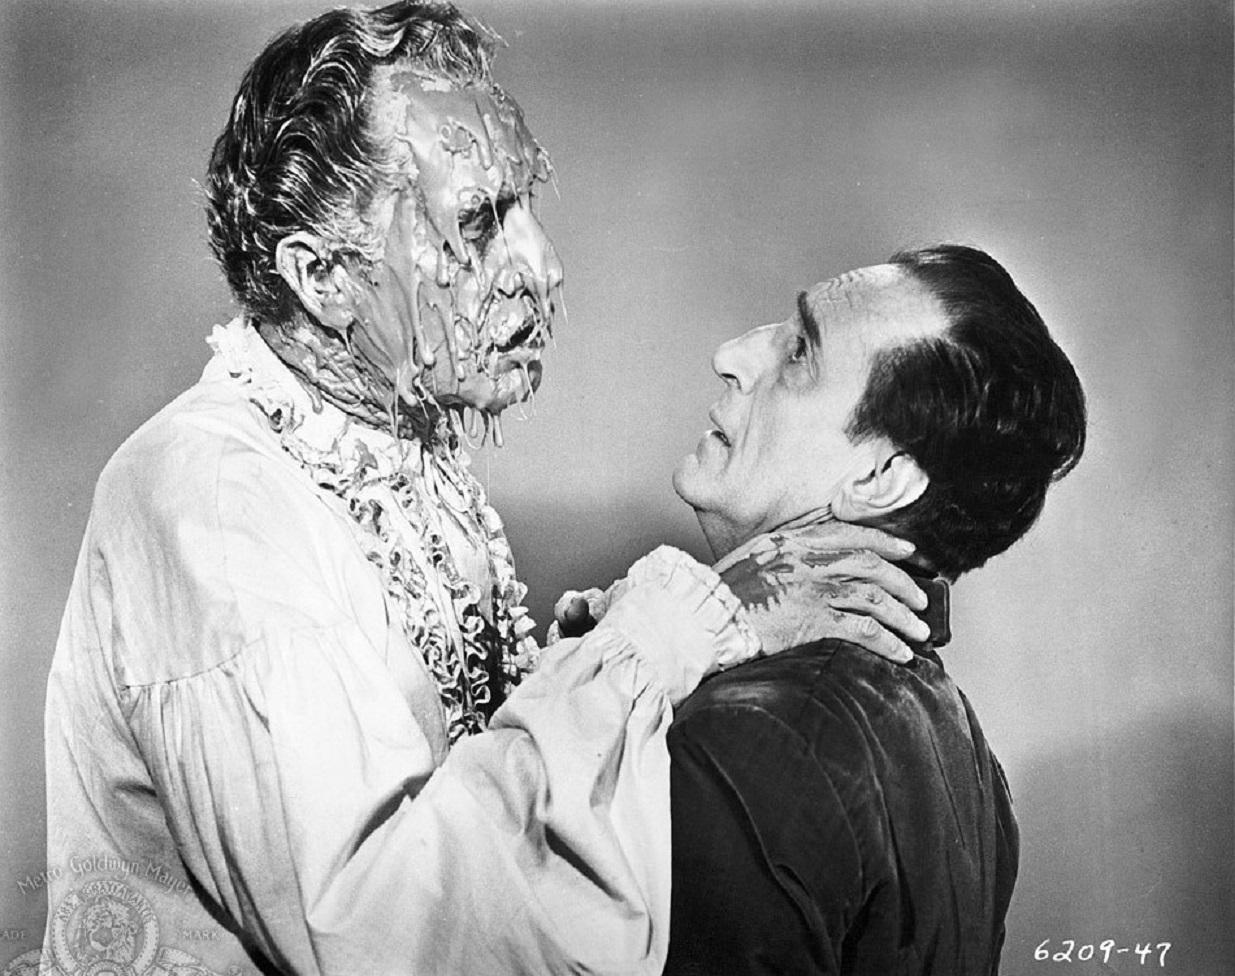 Valdemar (Vincent Price) undergoes gooey meltdown and attacks hypnotist Basil Rathbone after being kept alive in a hypnotic state following death in The Case of M. Valdemar episode from Tales of Terror (1962)